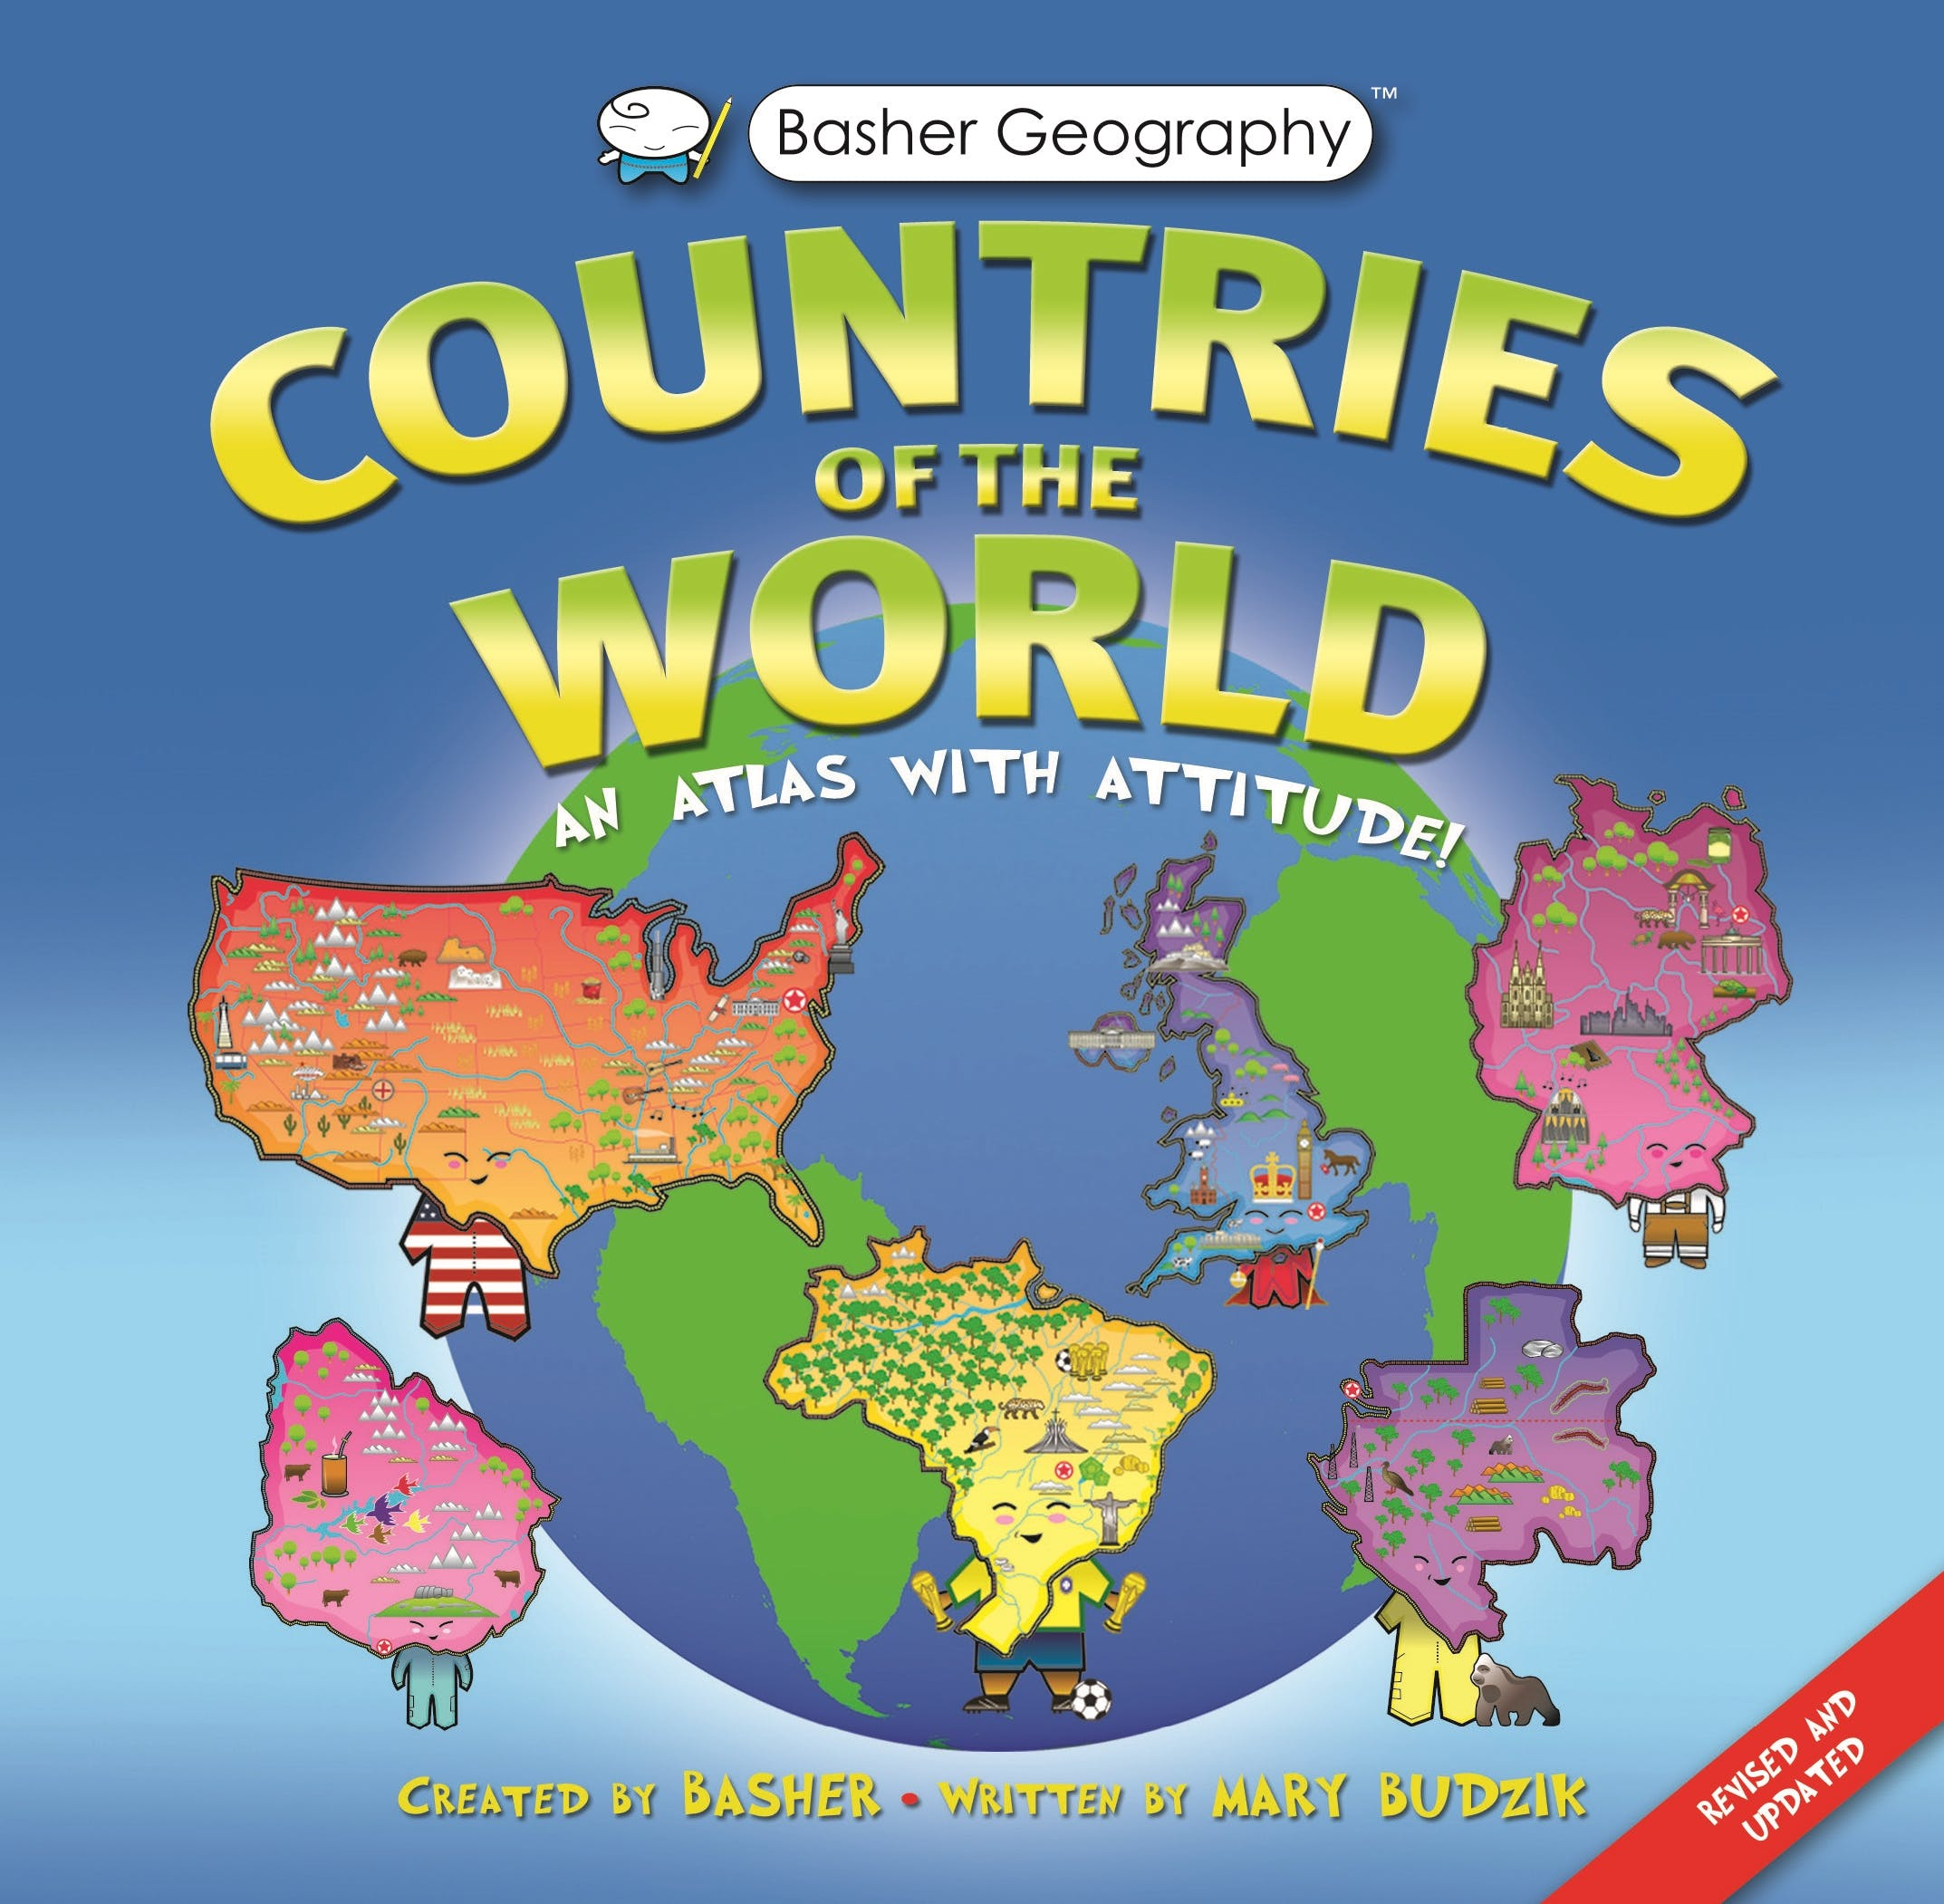 Image of Basher Geography: Countries of the World